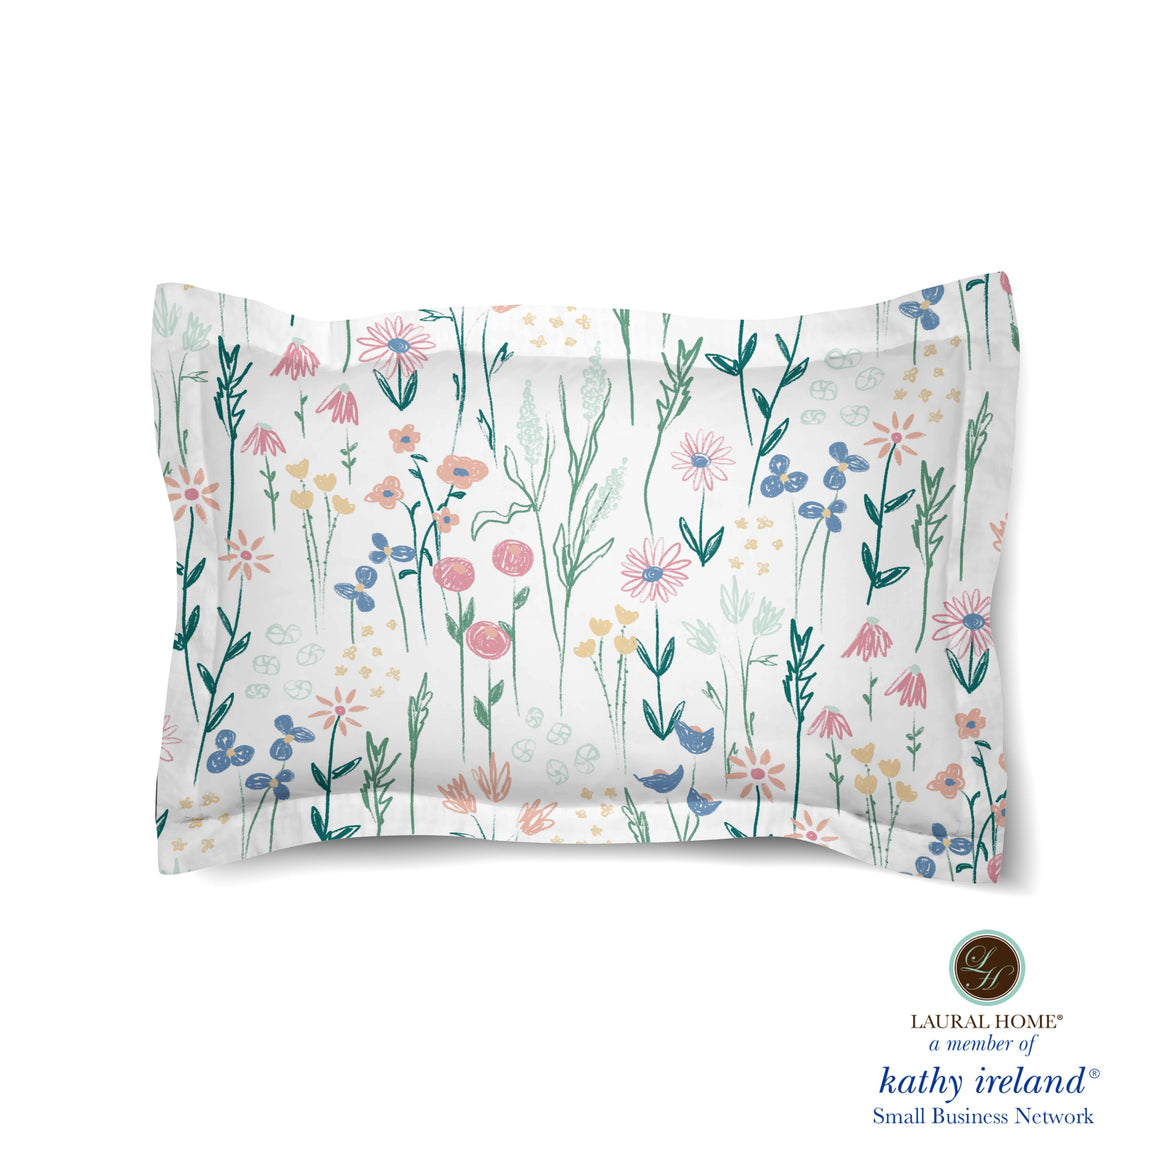 Laural Home kathy ireland® Small Business Network Member Delicate Floral Boho Comforter Sham